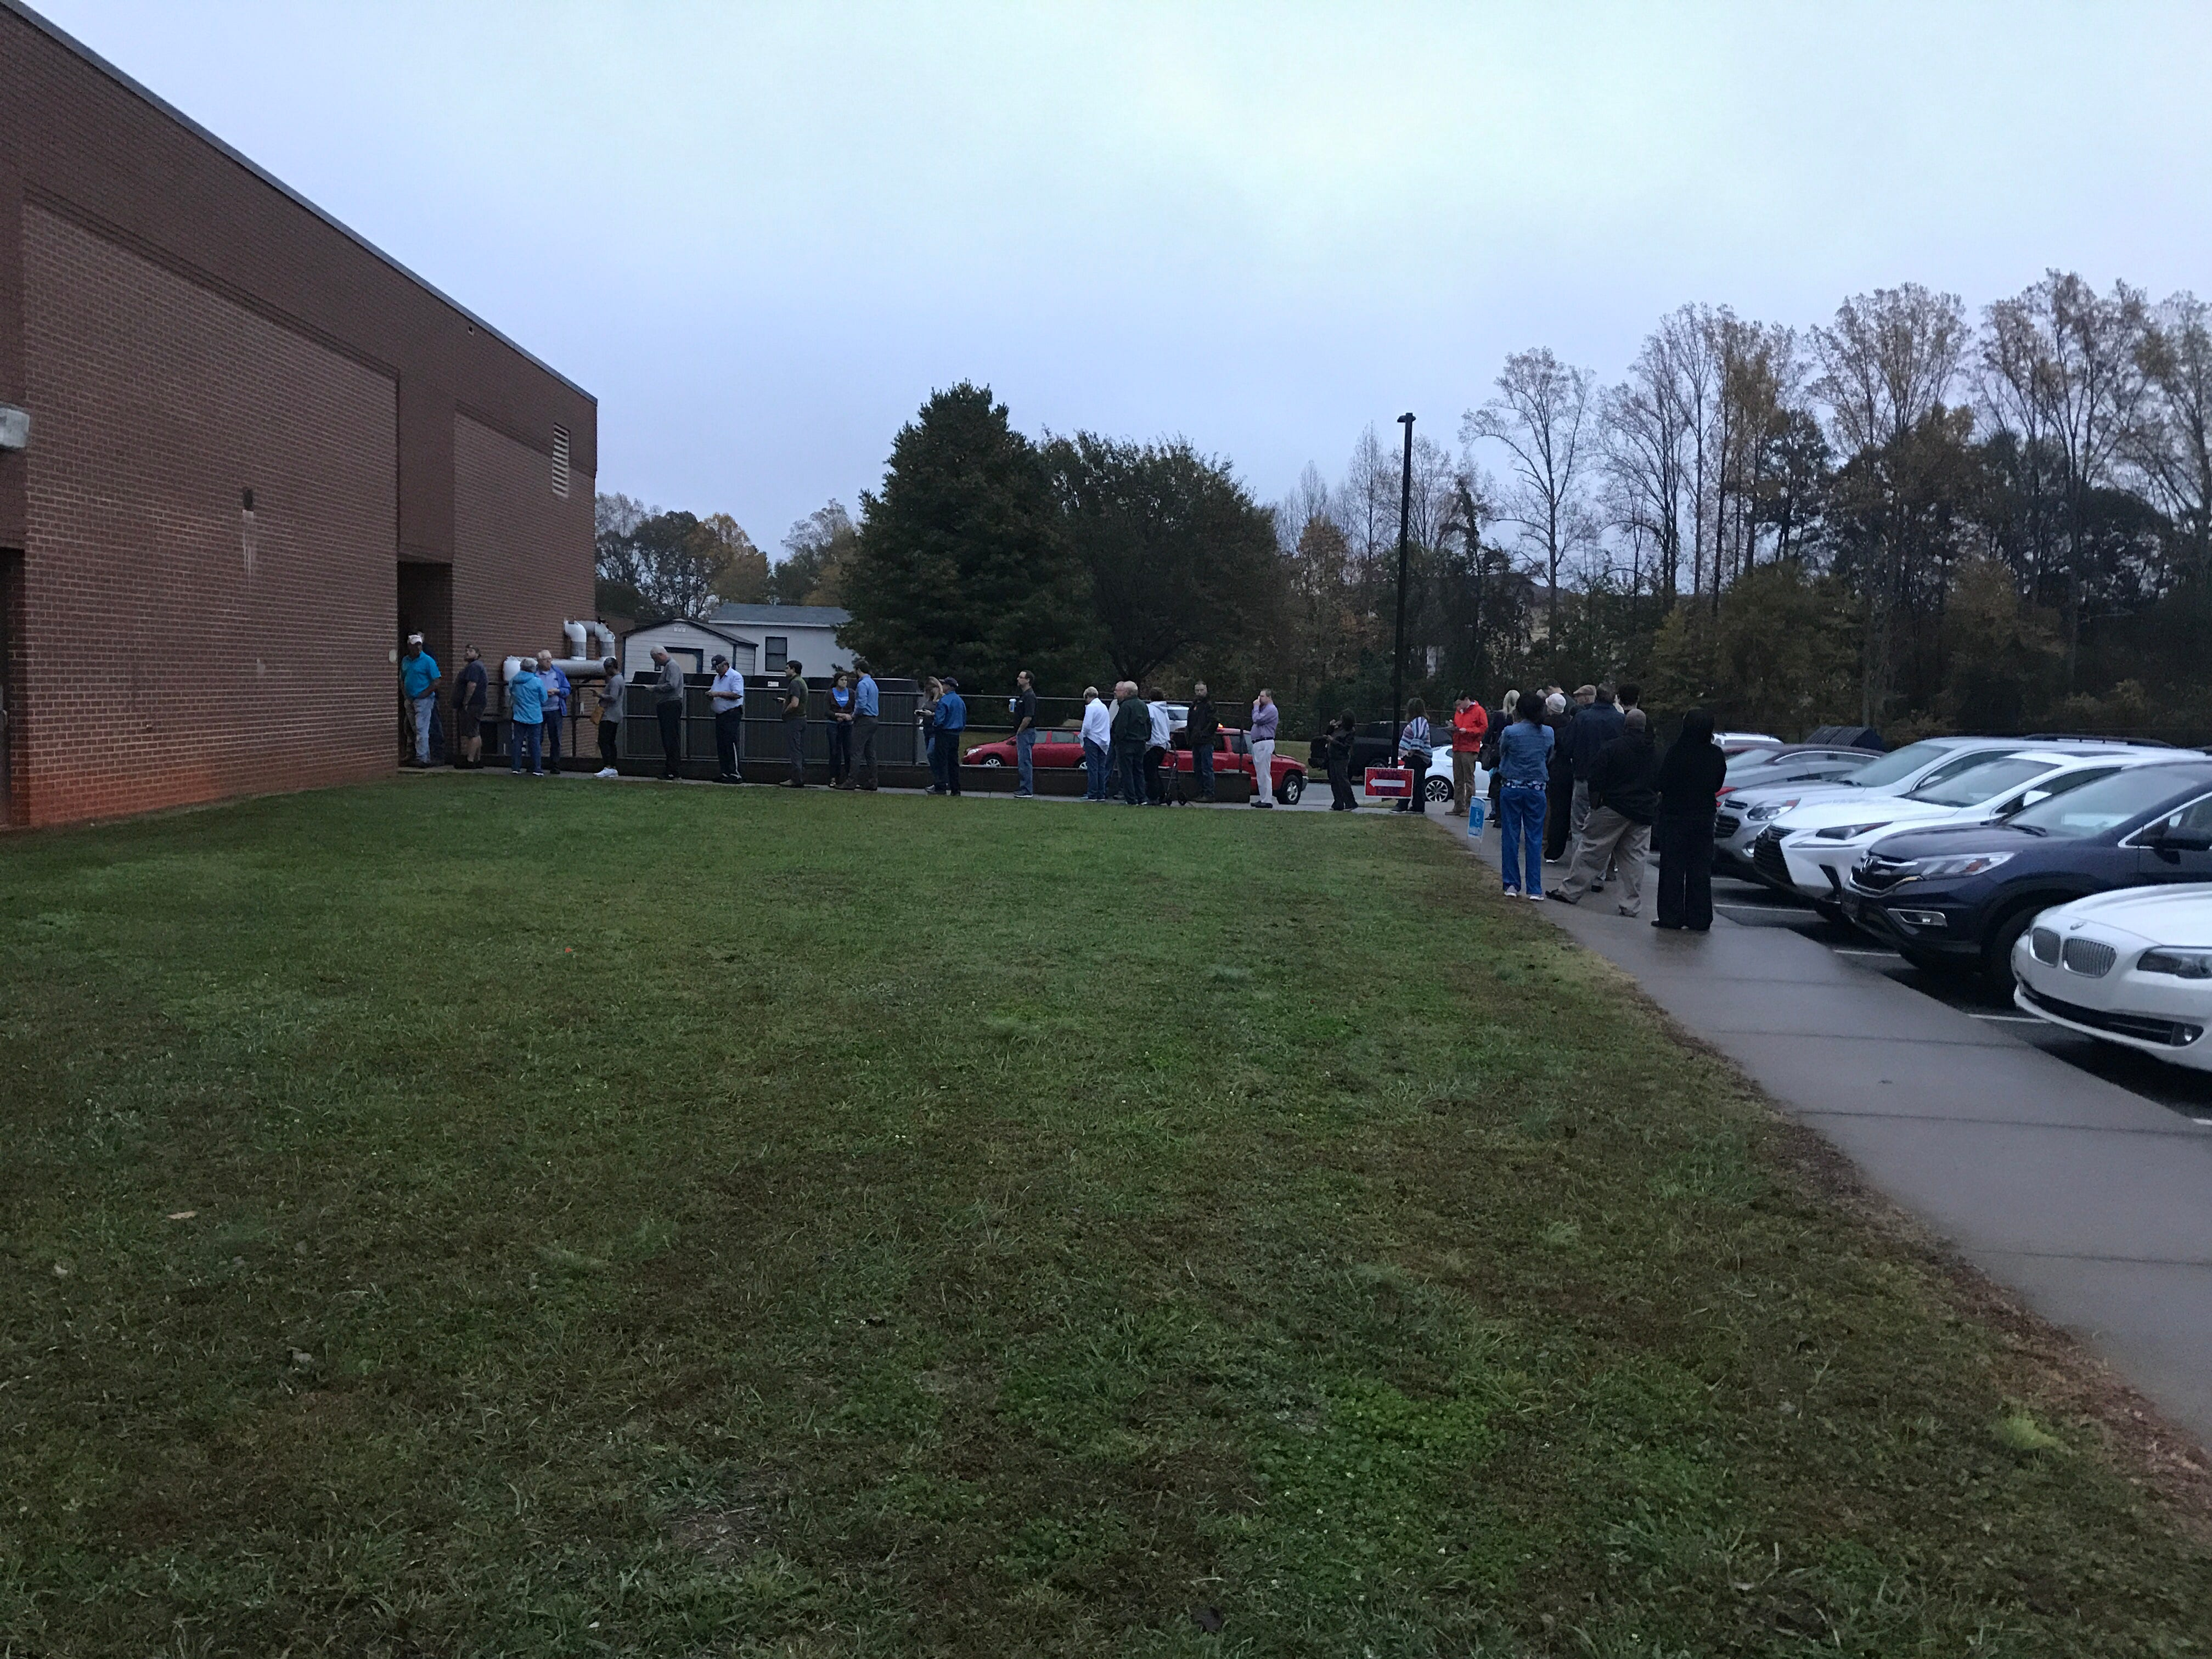 Voters line up at Powdersville Middle School in Anderson County to cast their ballot on Tuesday, Nov. 6, 2018, as South Carolina voted in the midterm elections.